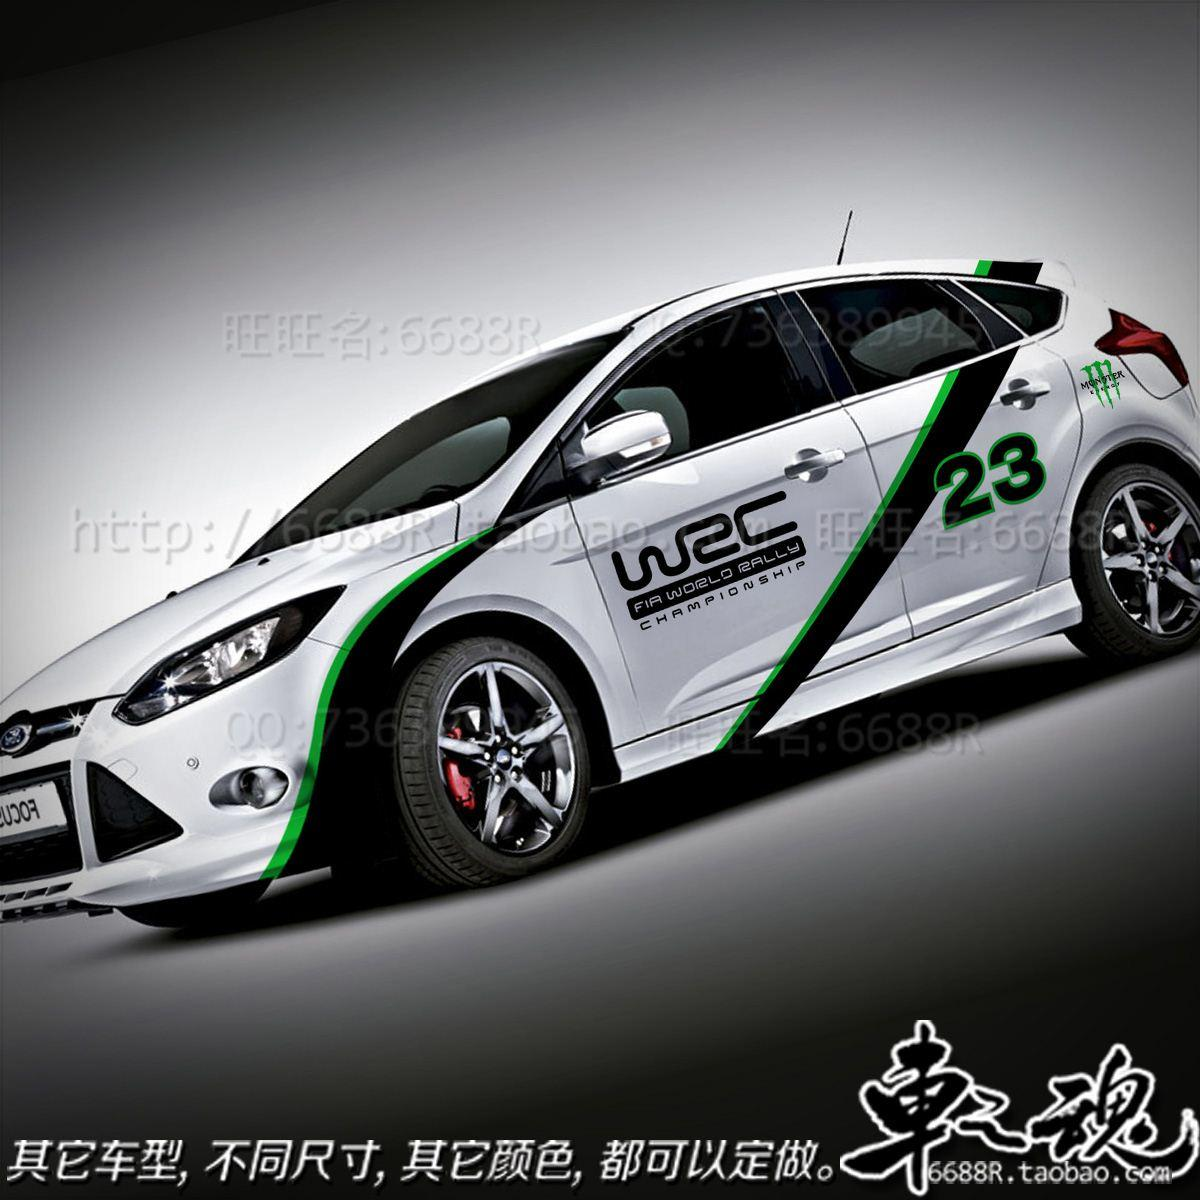 The New Ford Focus Wrc Racing Vehicle Stickers Car Stickers